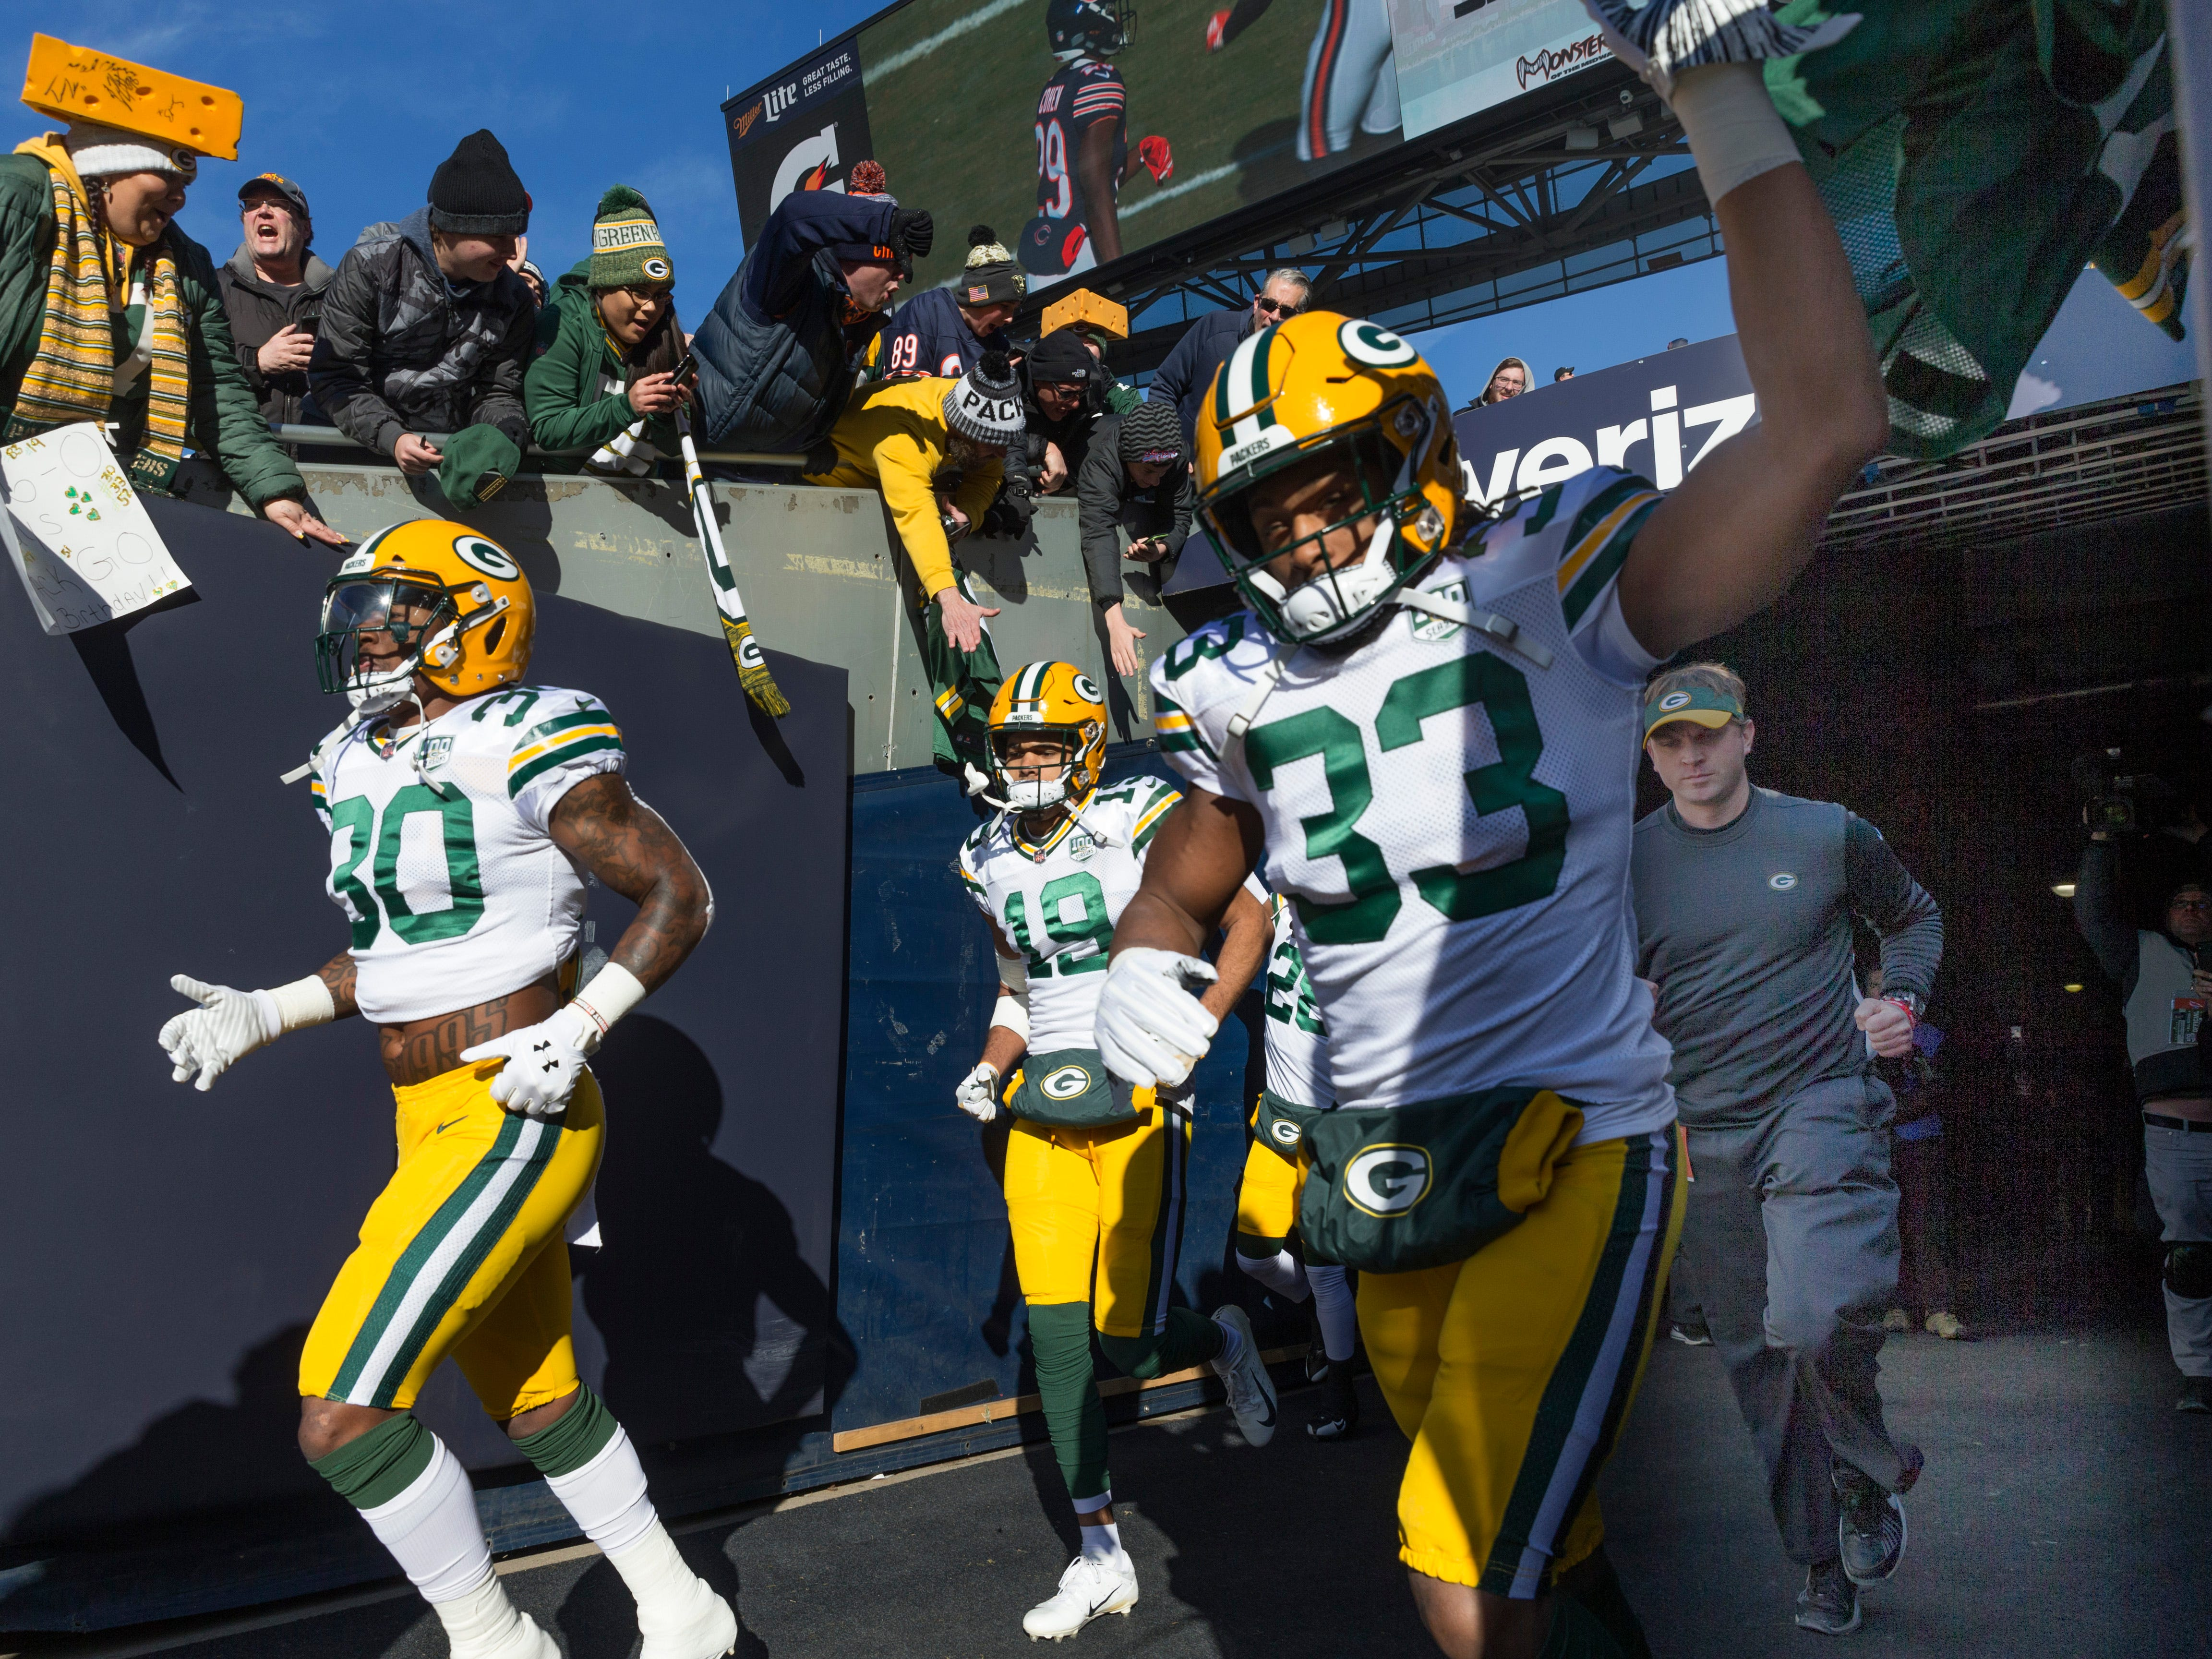 Green Bay Packers running back Jamaal Williams (30) and running back Aaron Jones (33) greet fans while taking to the field for warm ups  before their game against the Chicago Bears Sunday, December 25, 2018 at Soldier Field in Chicago, Ill.